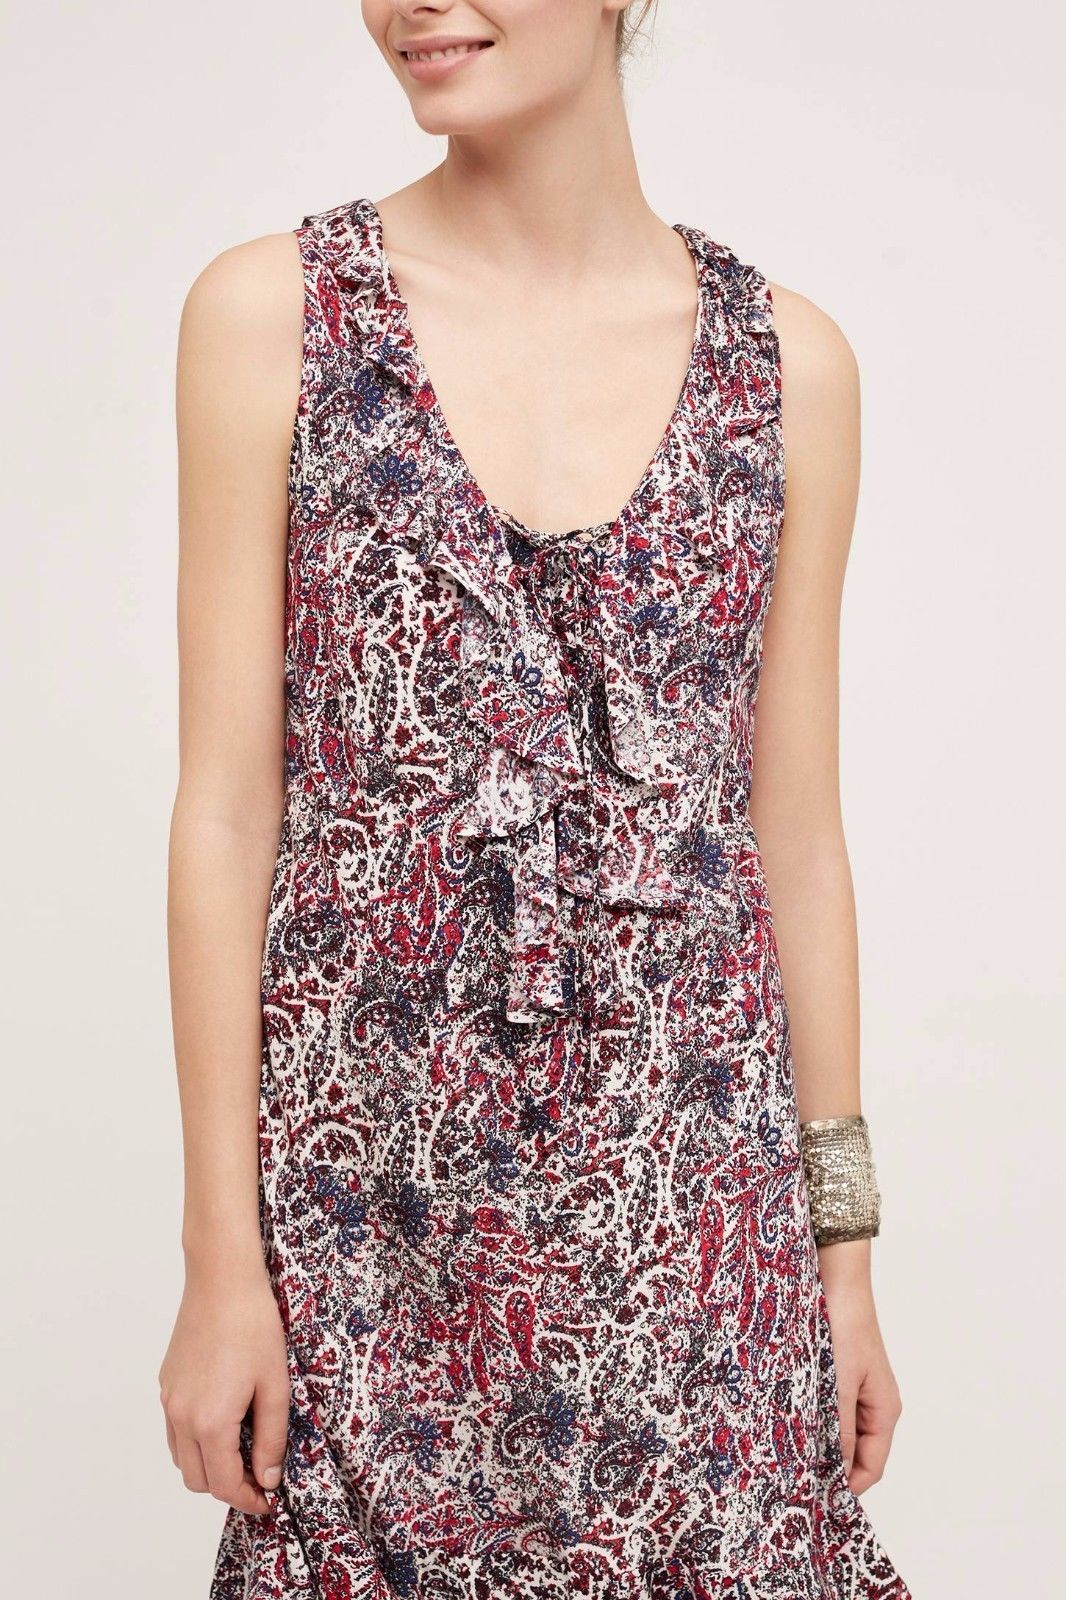 NWT ANTHROPOLOGIE WINDWARD RUFFLE LACE UP DRESS by MAEVE L